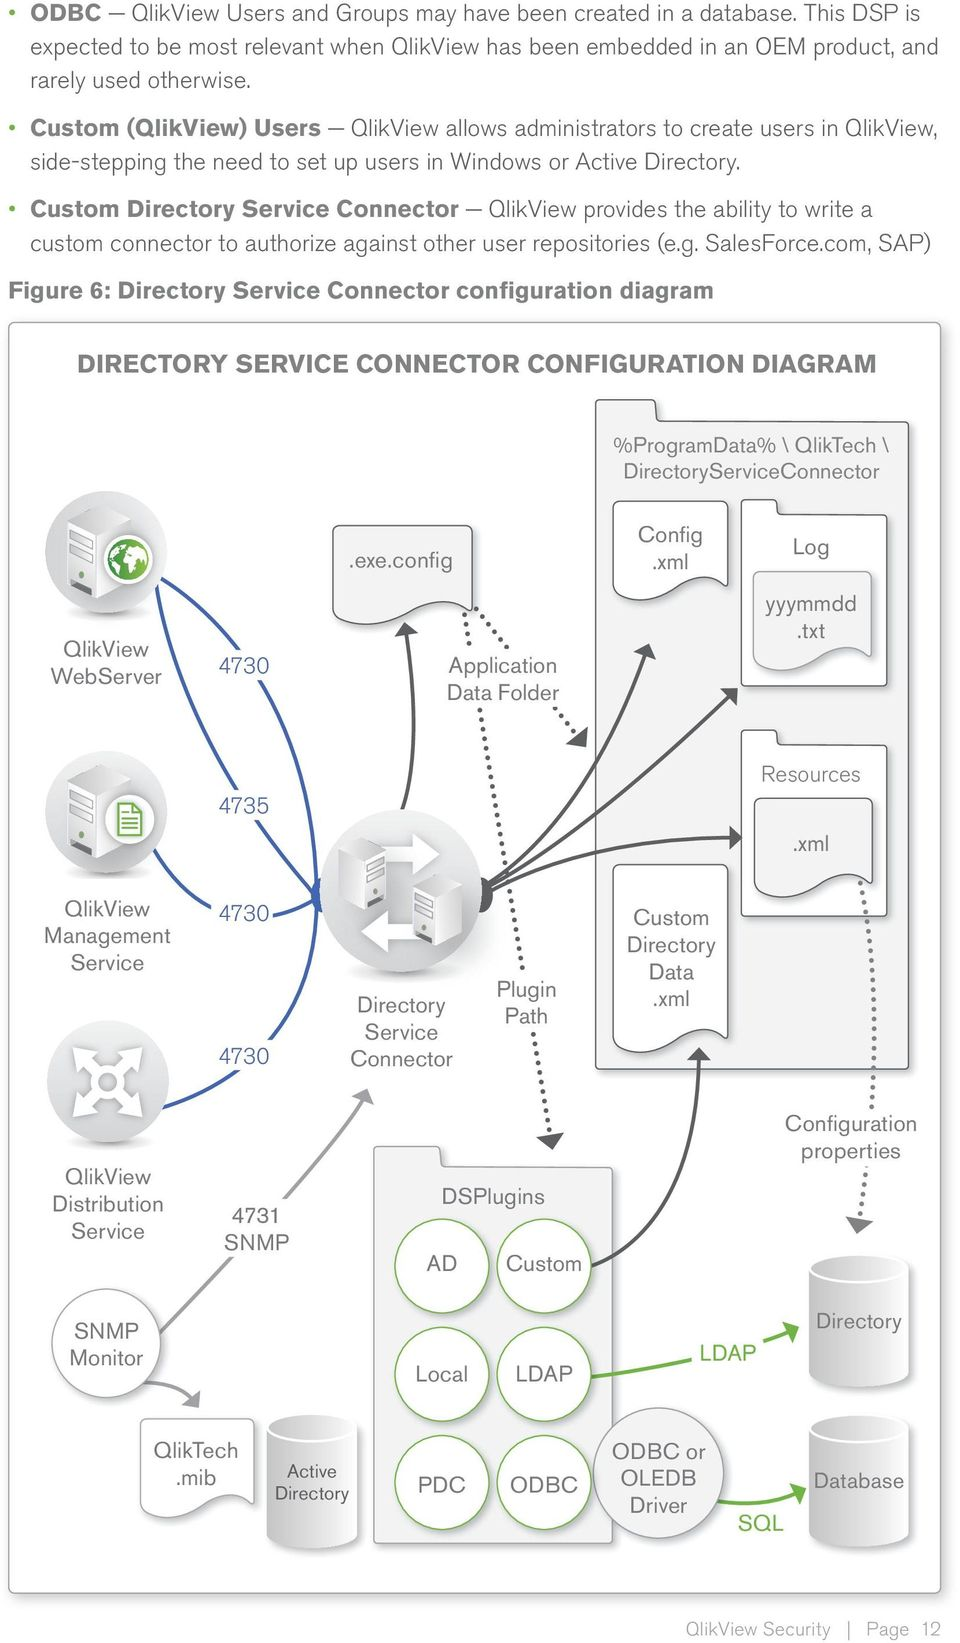 Custom Directory Service Connector provides the ability to write a custom connector to authorize against other user repositories (e.g. SalesForce.